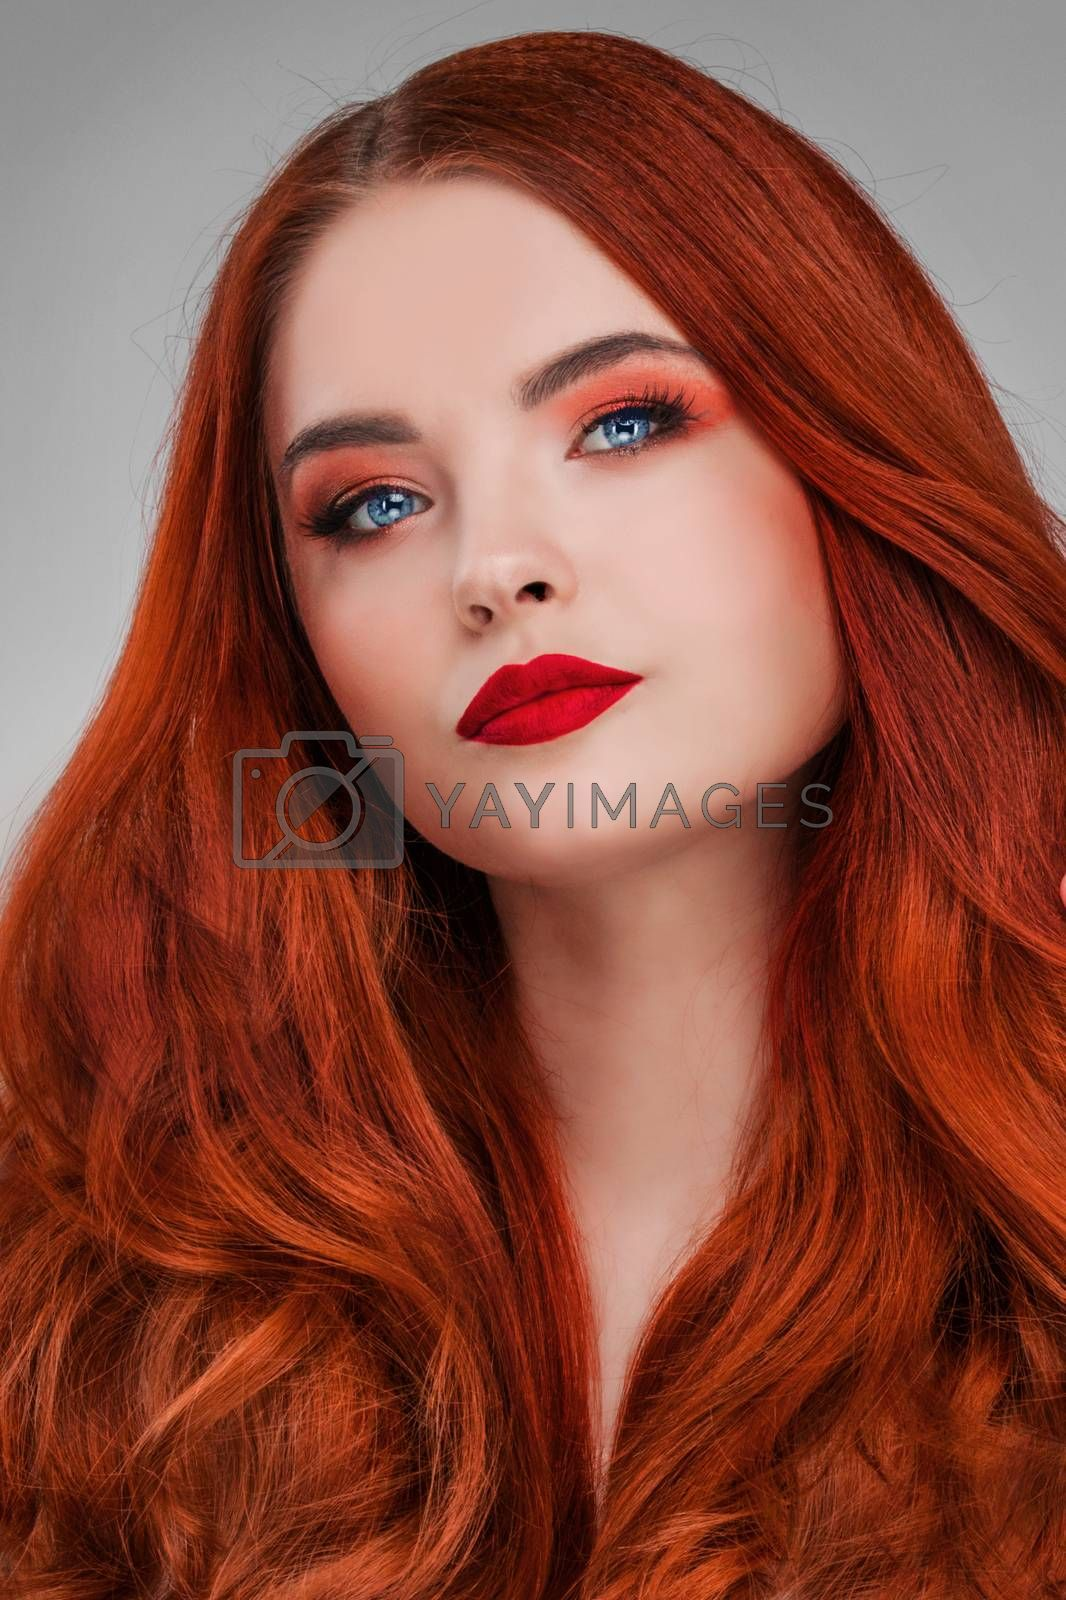 A beauty shot of a young woman with red hair and beauty make-up